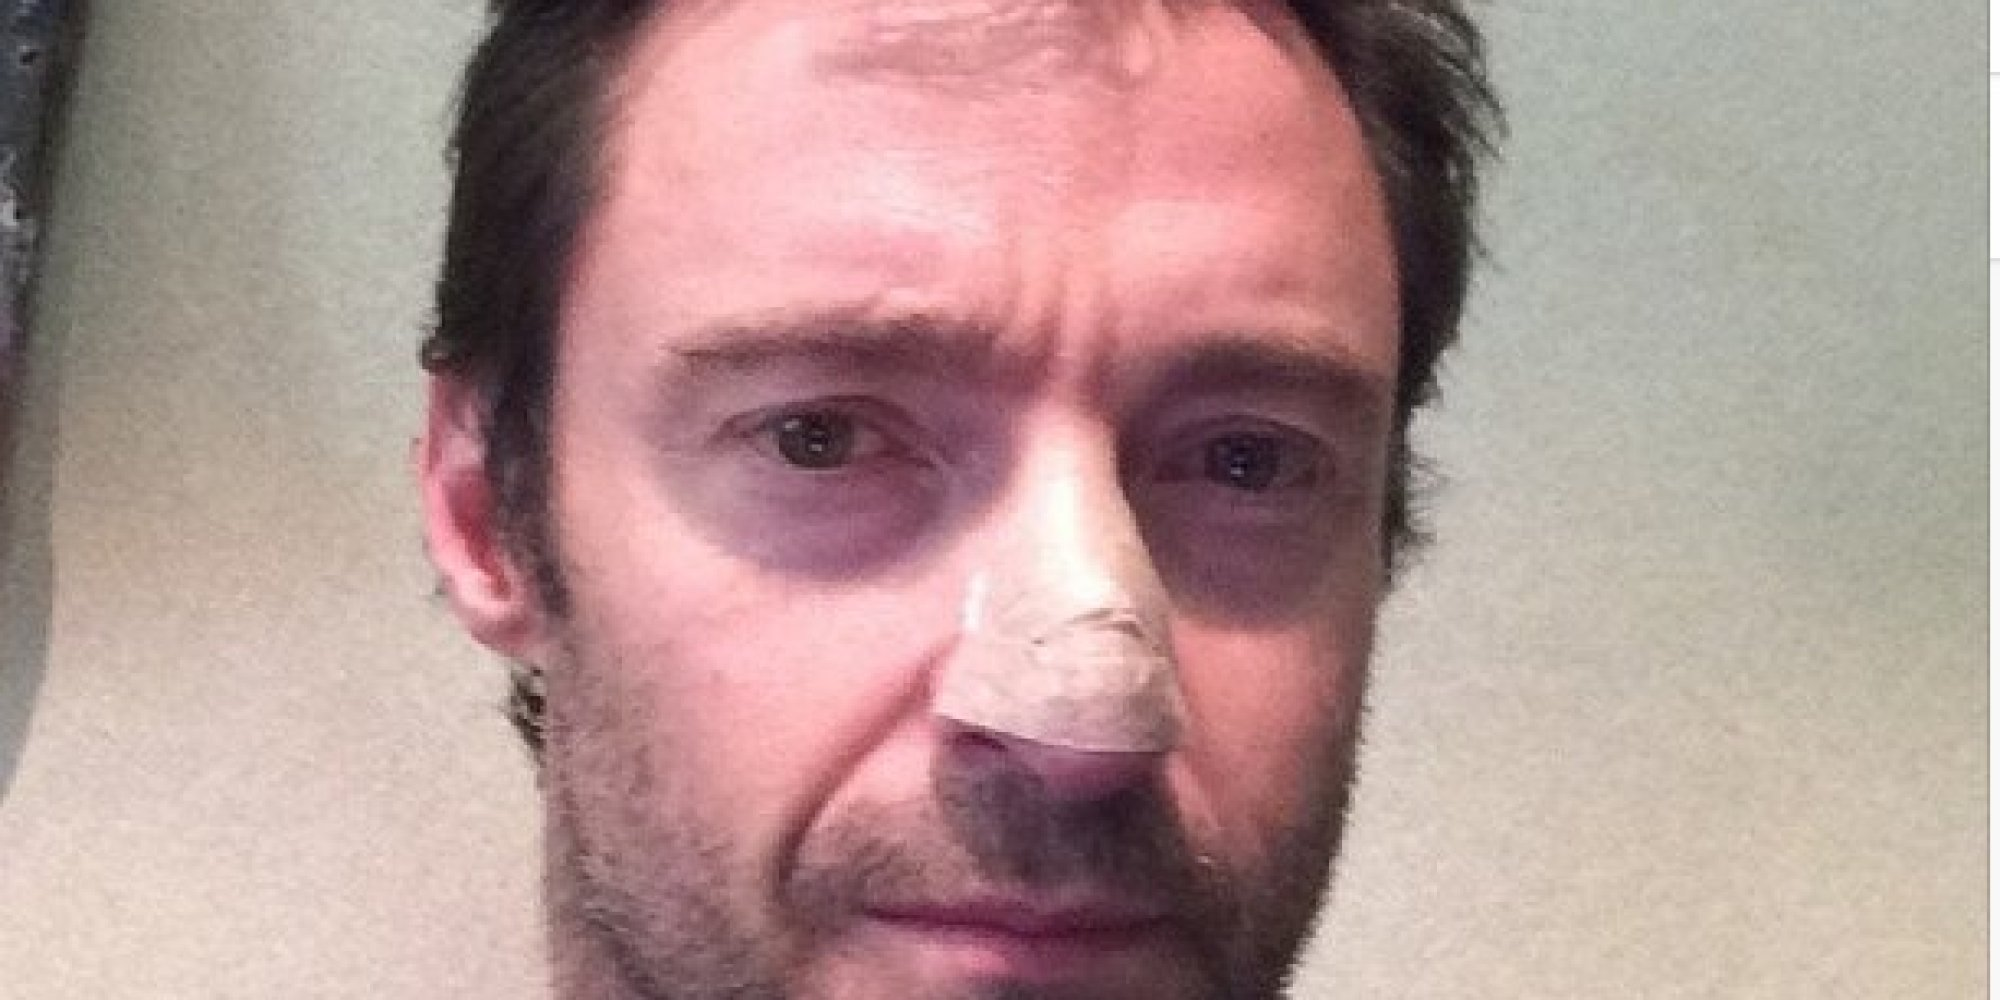 hugh jackman treated for skin cancer: what is basal cell carcinoma, Human Body